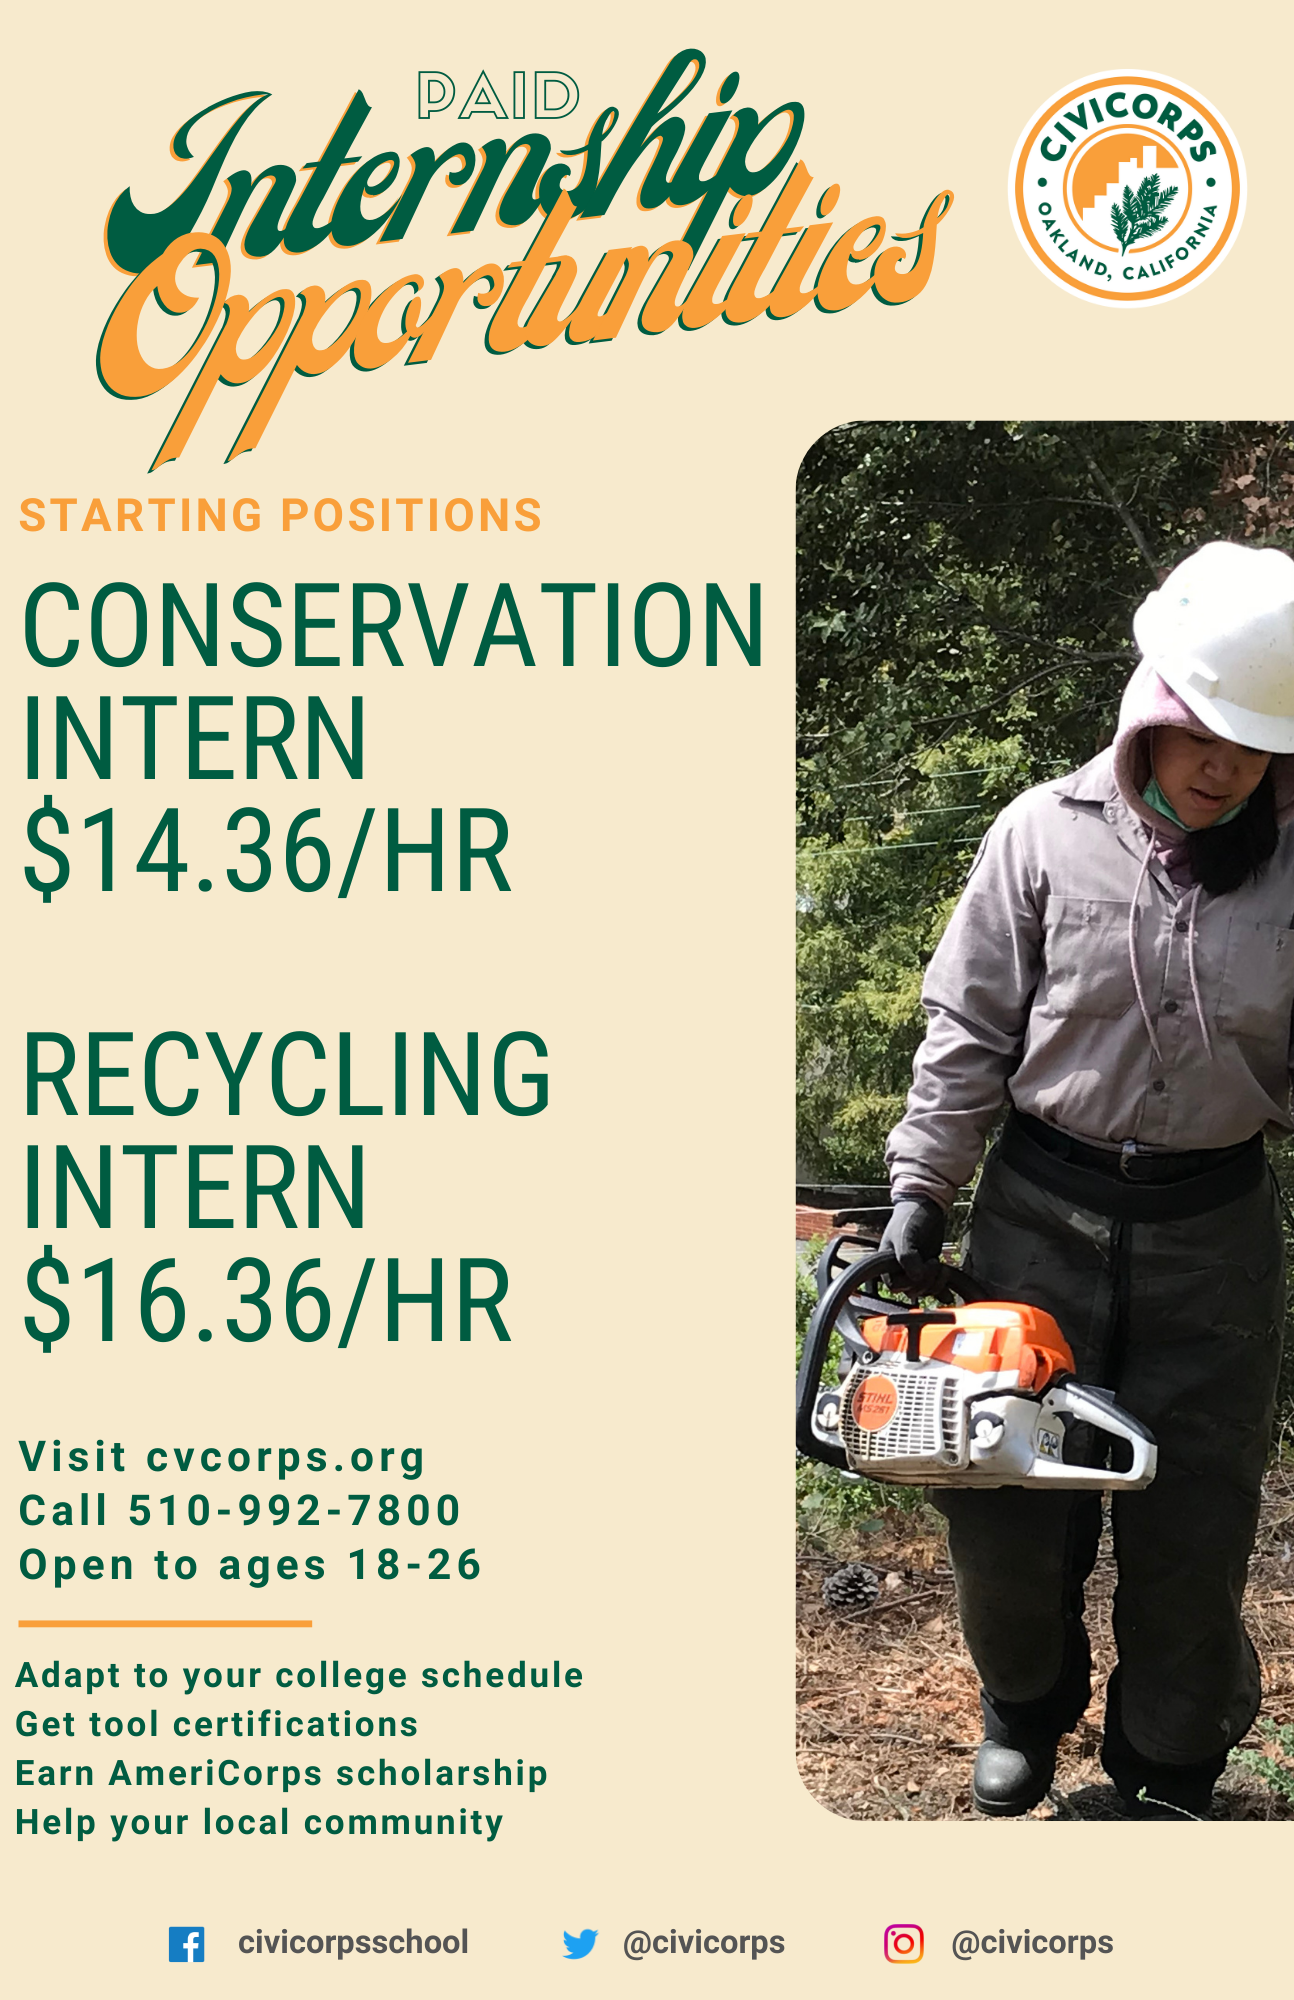 Land management and recycling social enterprises: 398 tons of CRV material collected 156 tons of E-waste collected 119 used oil centers visited 5,967 abandoned tires collected 103 miles of trail construction and maintenance 34 miles of shoreline and waterway improvement 579 acres of wildland fire mitigation 23 acres of habitat restoration 54,121 hours of paid conservation training.